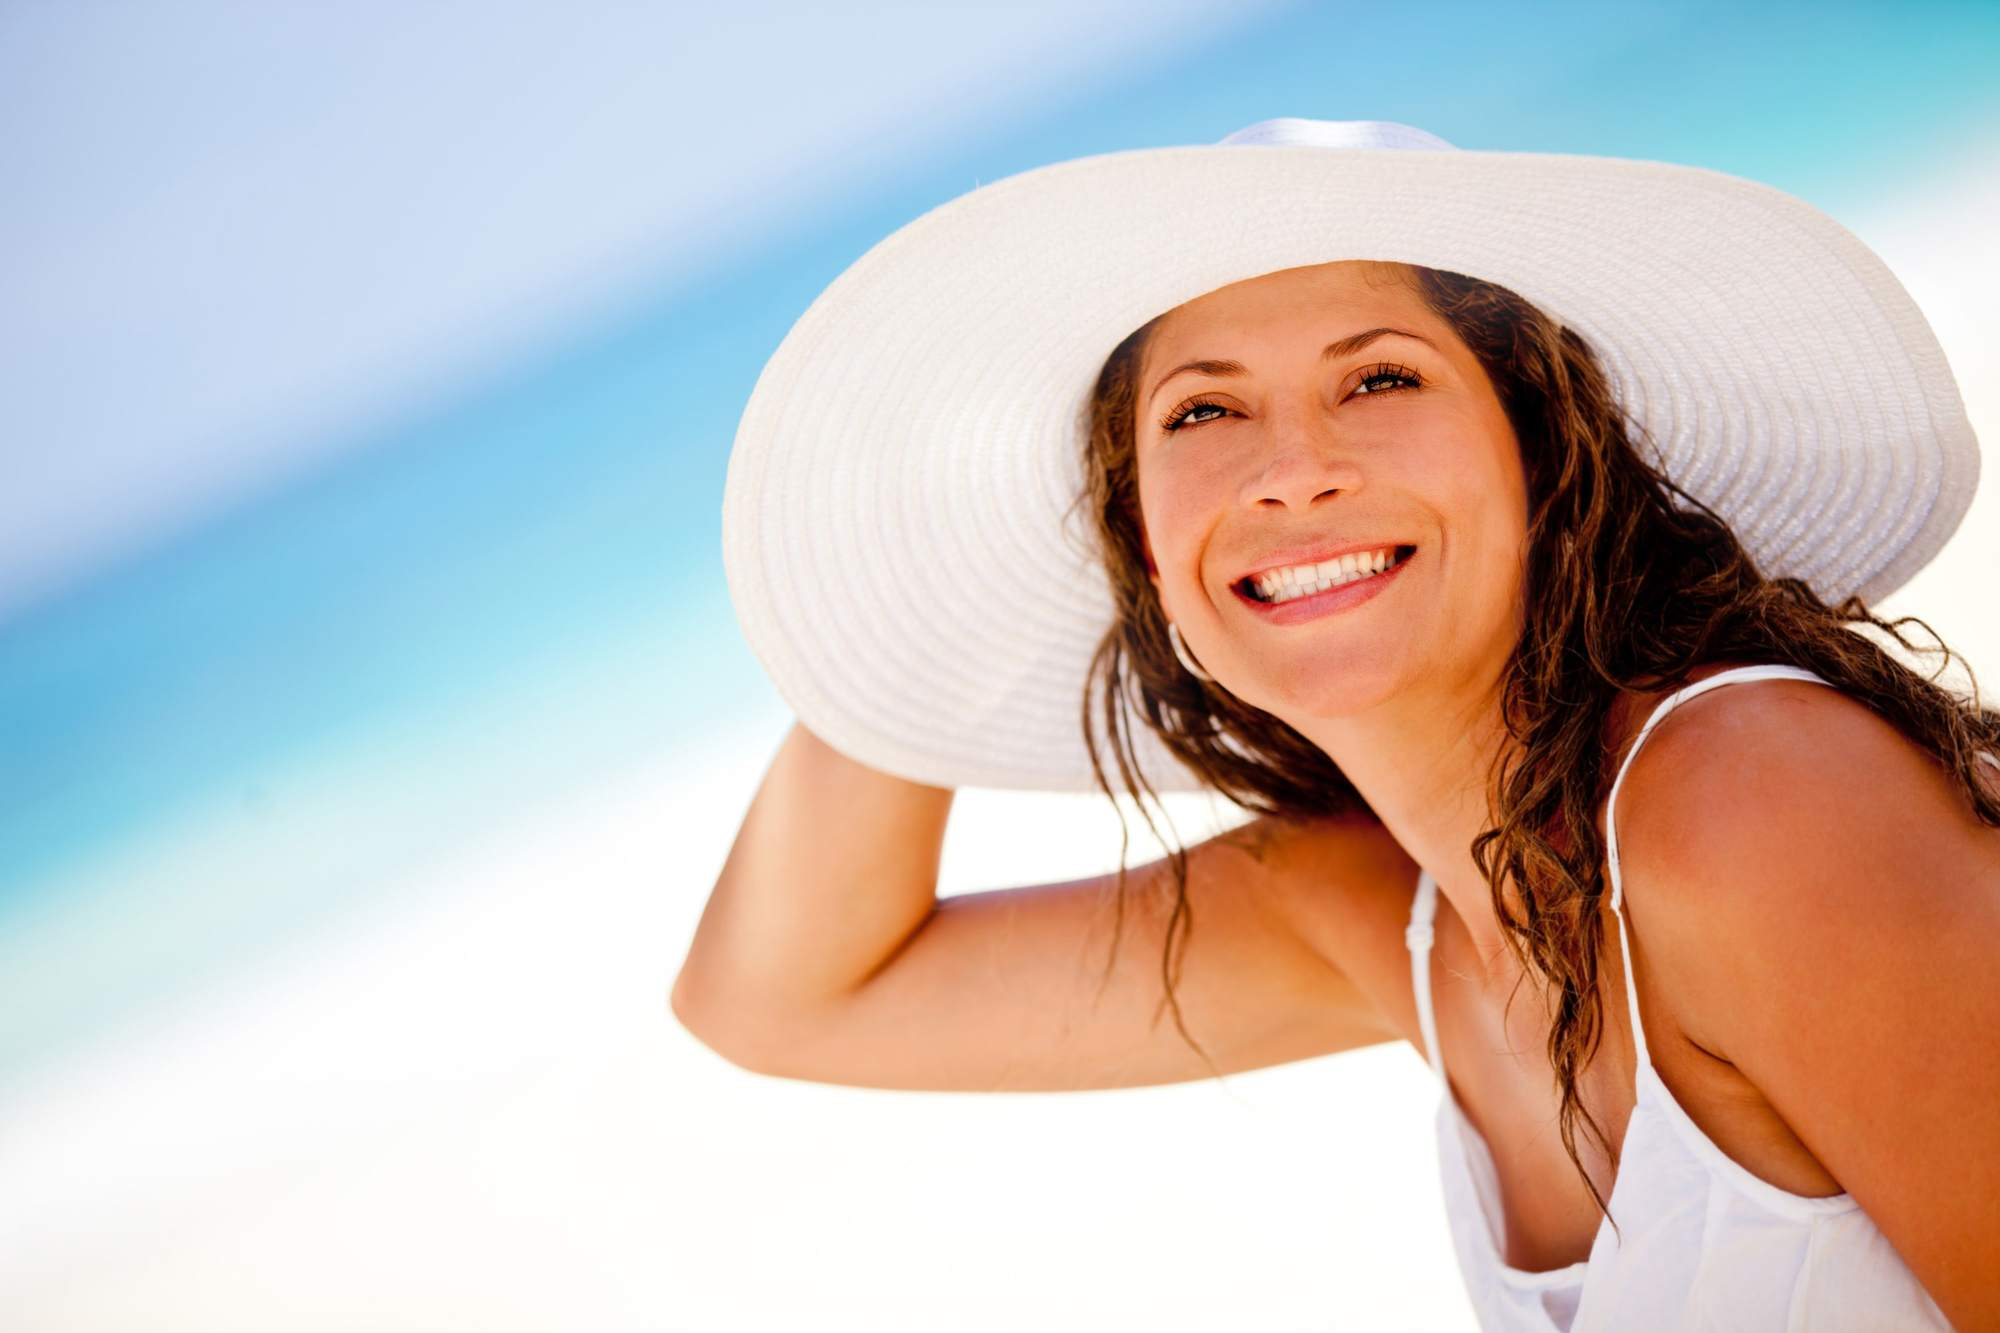 Why You Should Brighten Your Smile for Summer